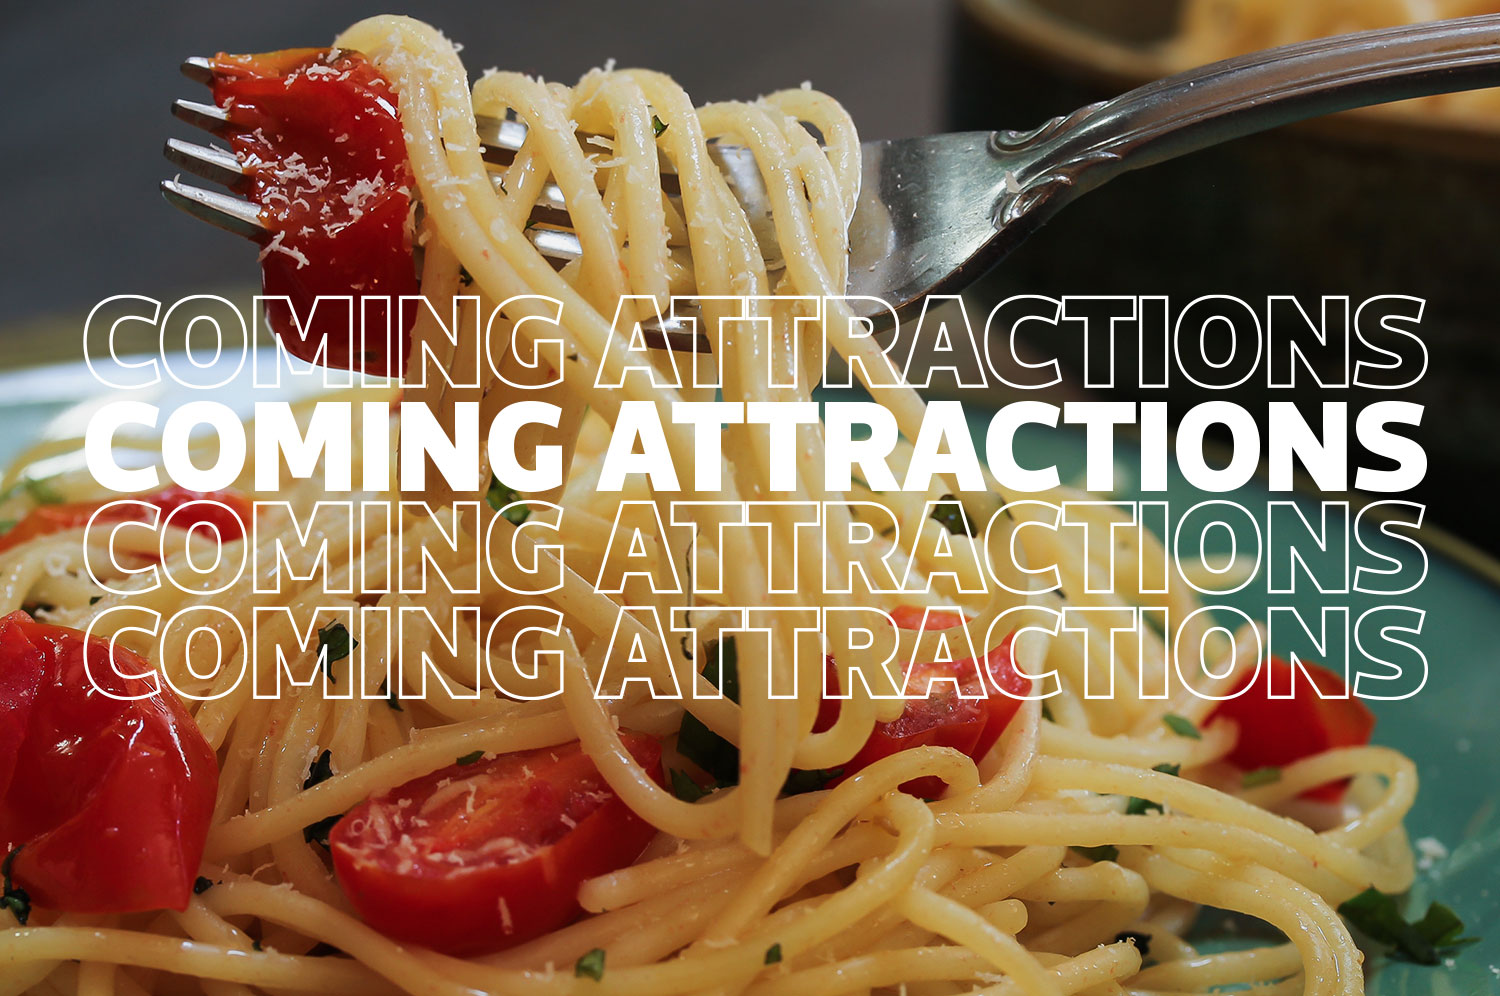 """A close-up of a silver fork twirling strands of pasta underneath the text """"Coming Attractions"""""""